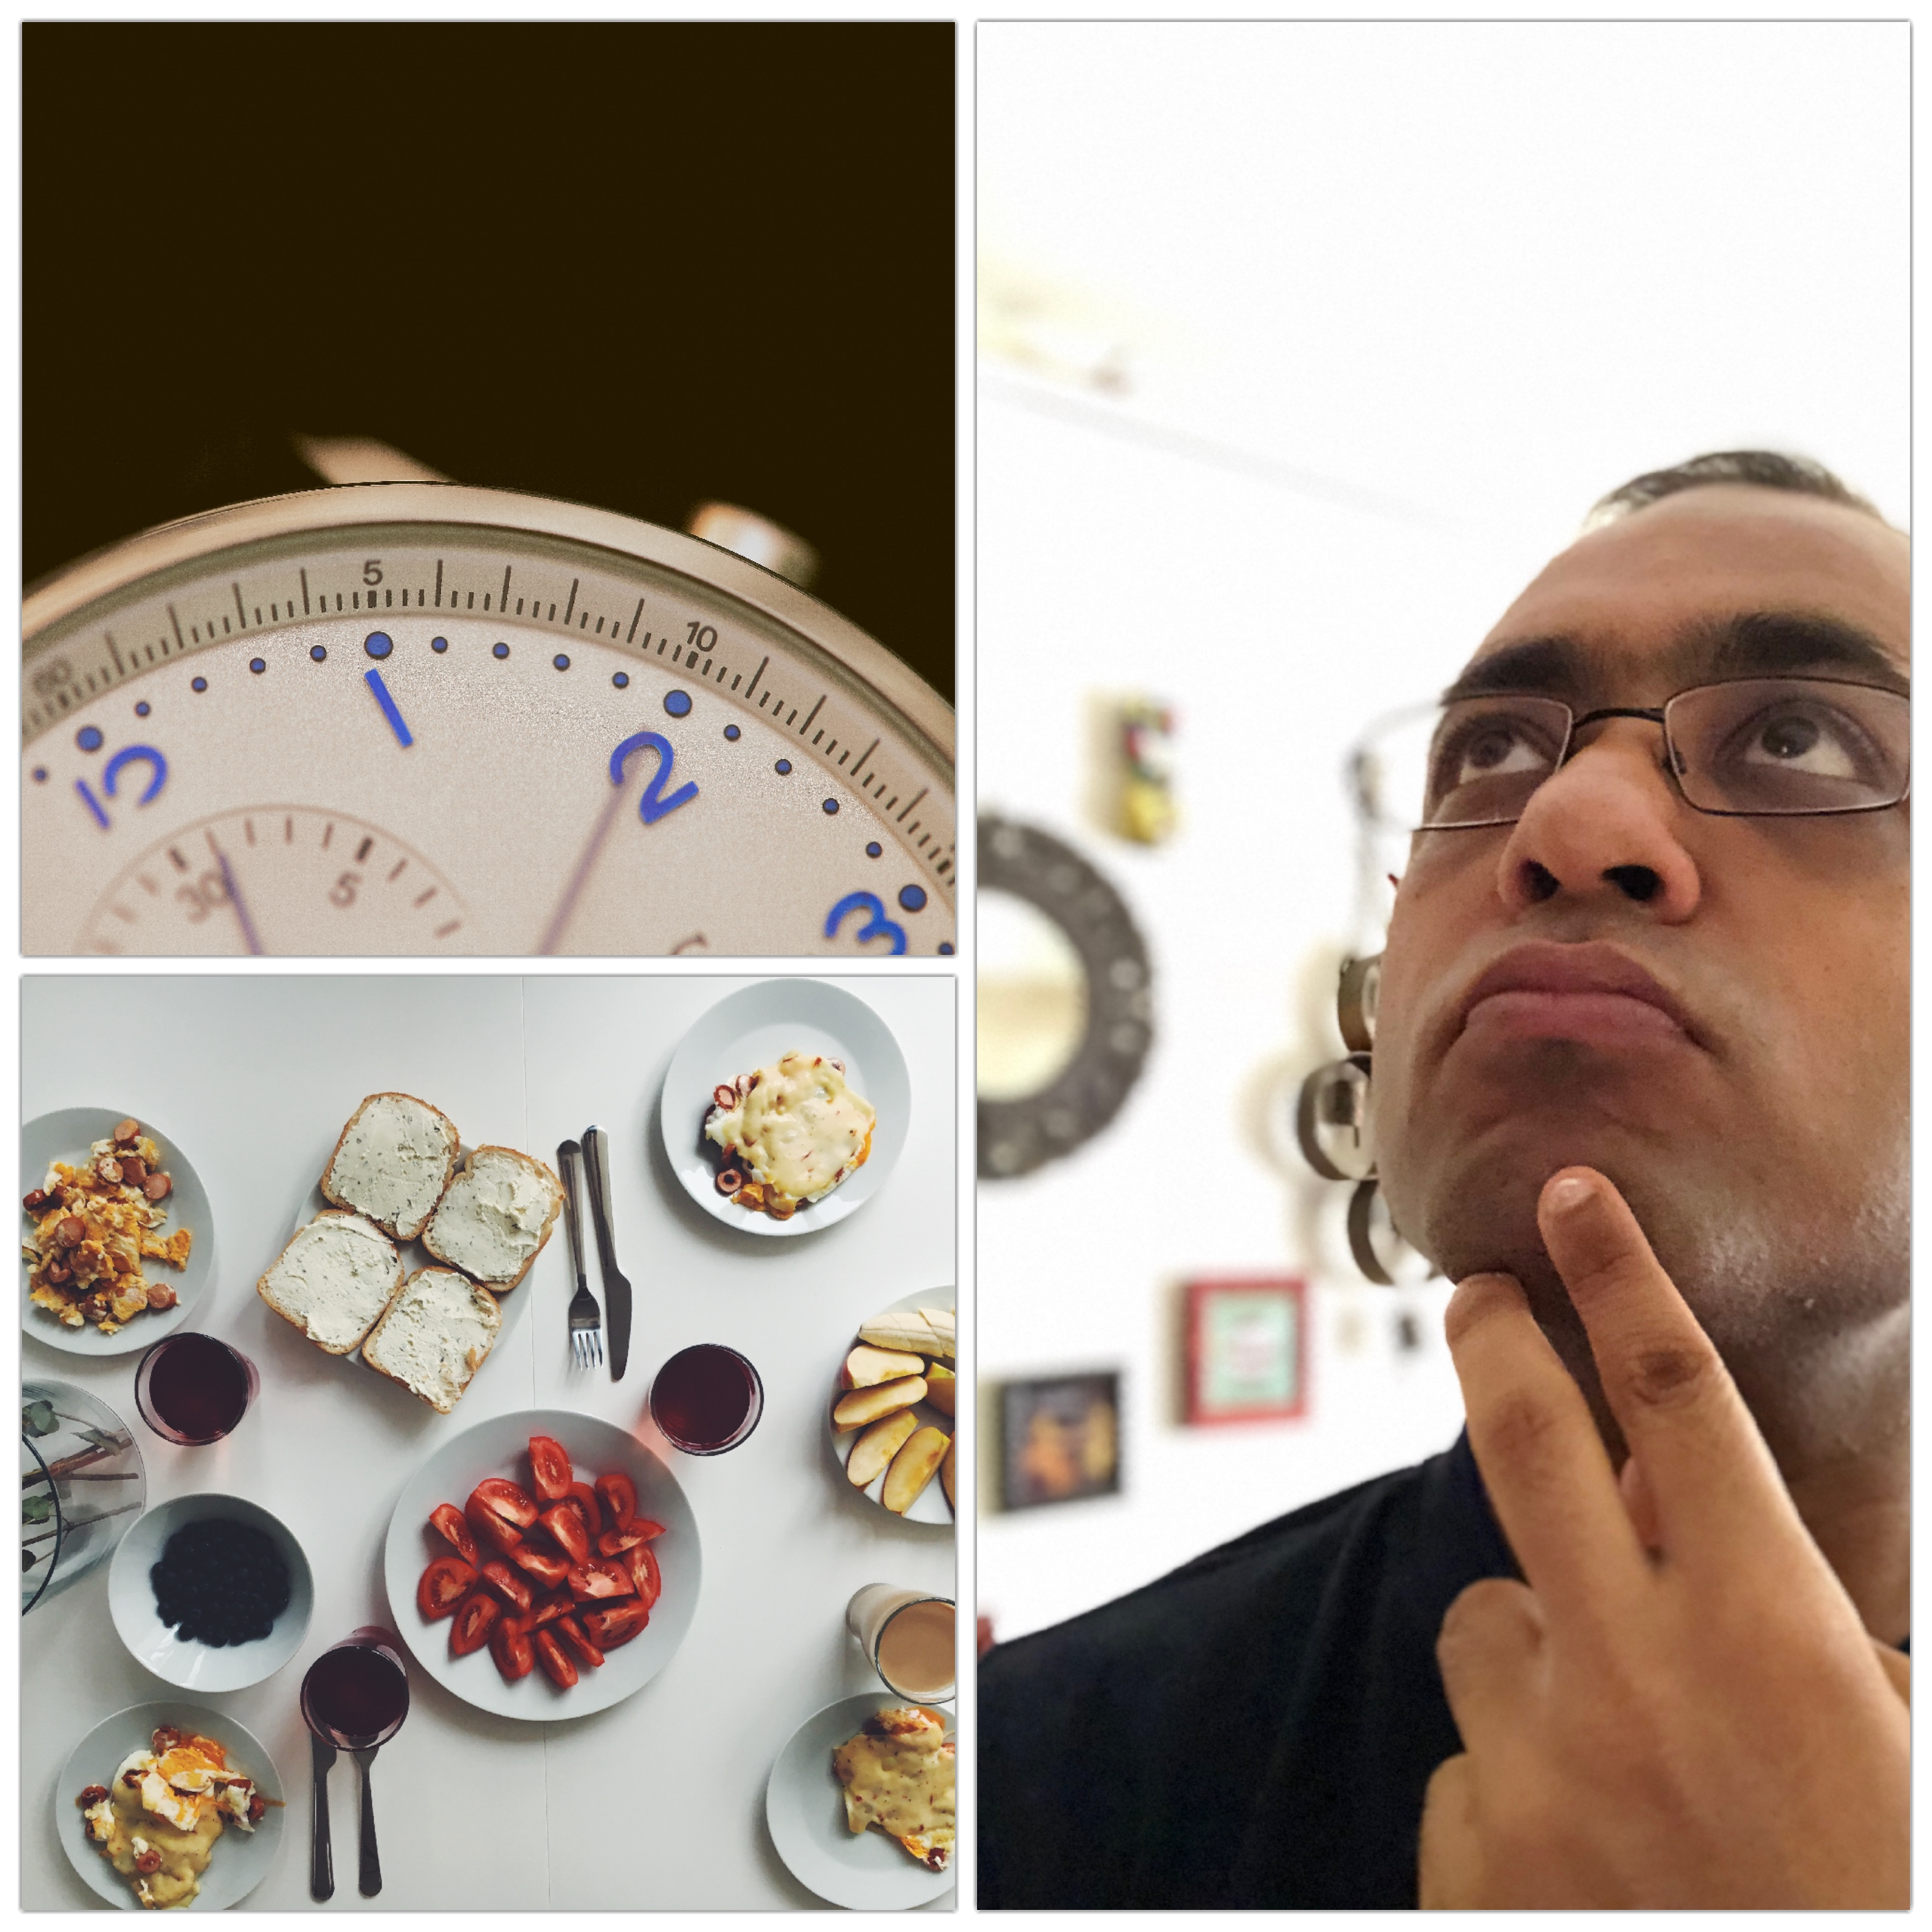 6 Weeks of Intermittent Fasting: Here's What It's Done To Me